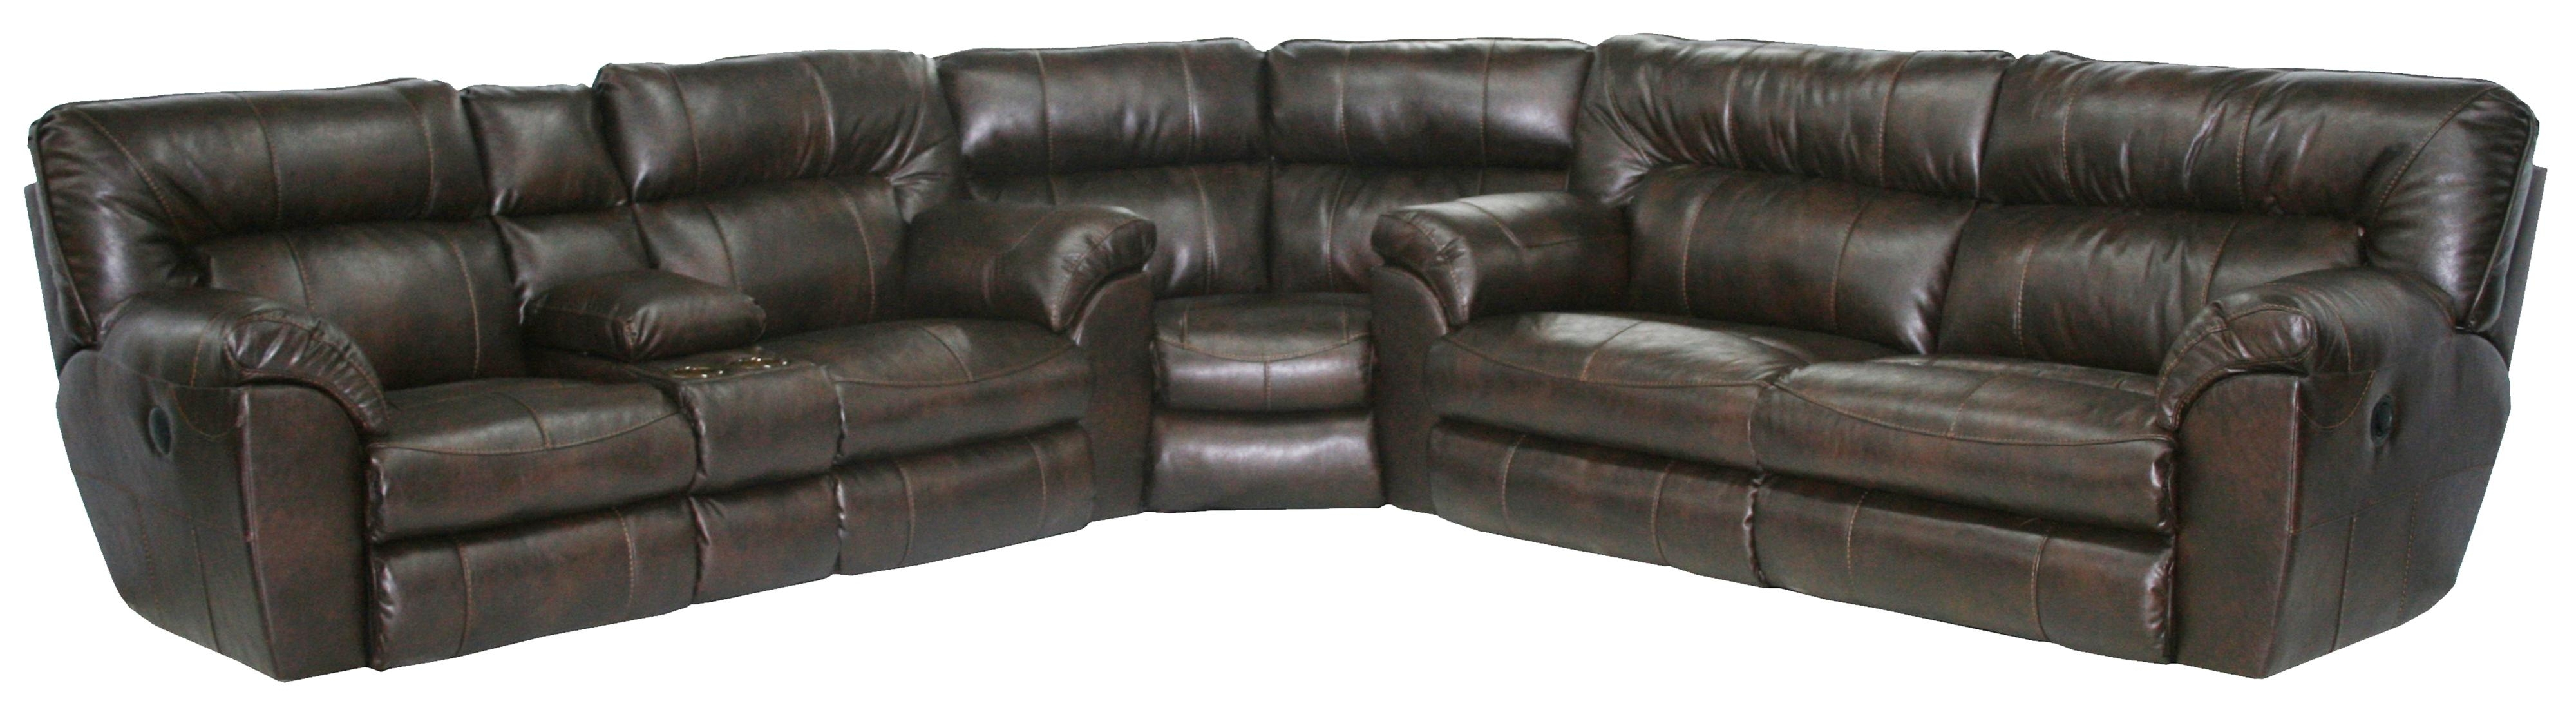 Power Reclining Sectional Sofa With Left Consolecatnapper | Wolf in Sectional Sofas With Consoles (Image 4 of 10)